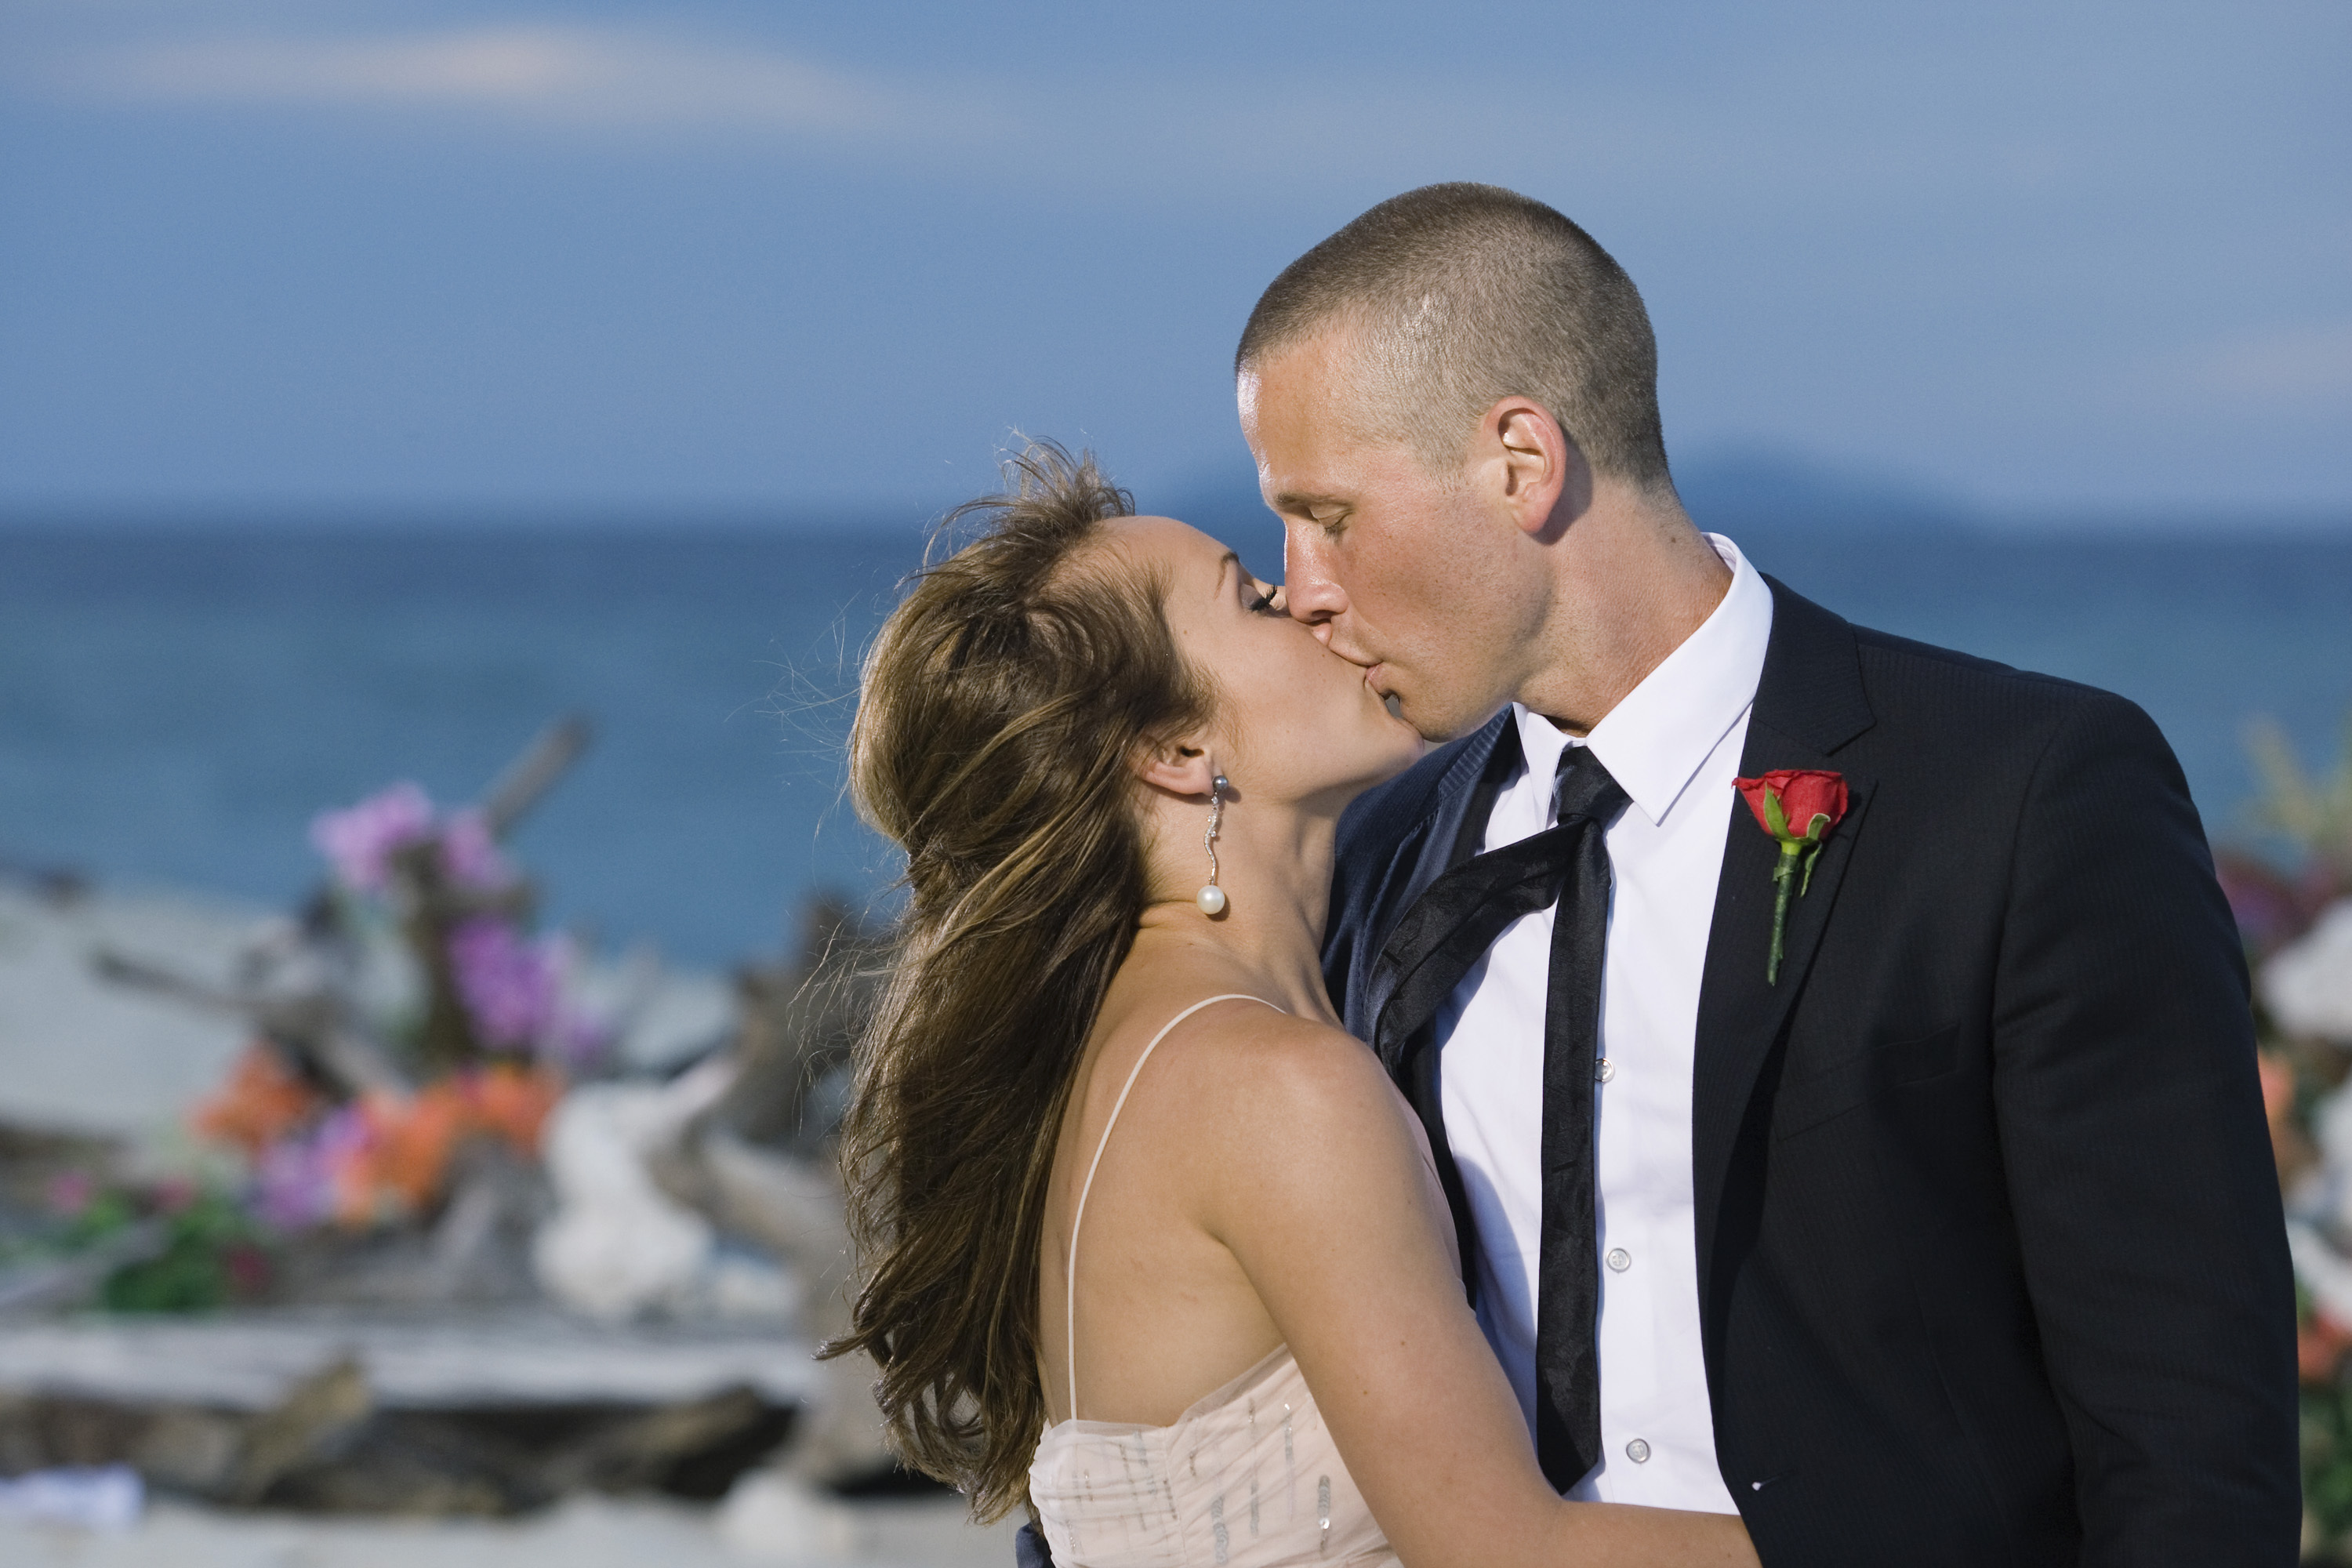 Ashley Hebert and J.P. Rosenbaum's 'Bachelorette' wedding: 5 spoilers about their big day